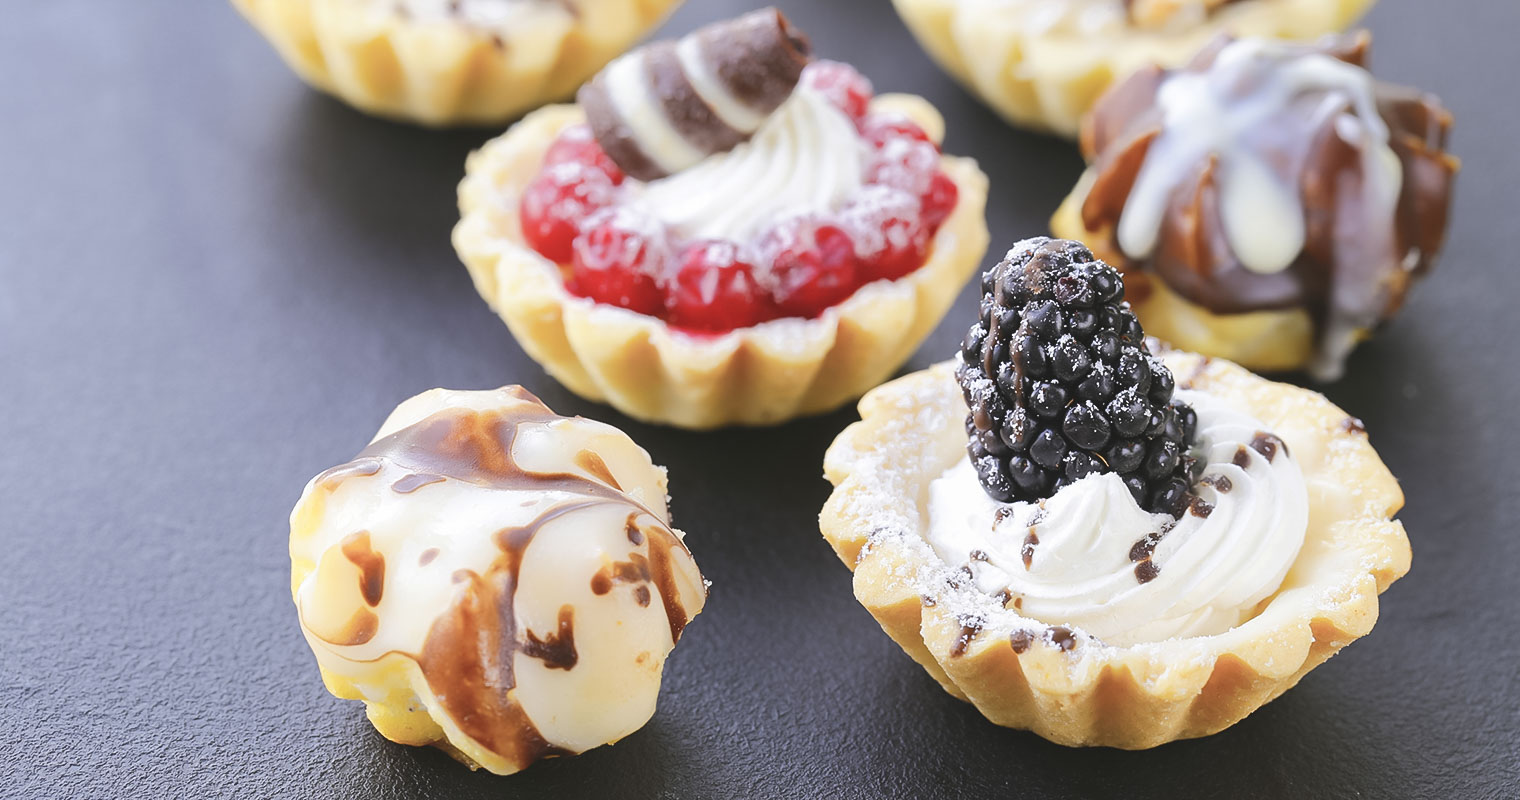 Pastries as example of food with high-glycemic index